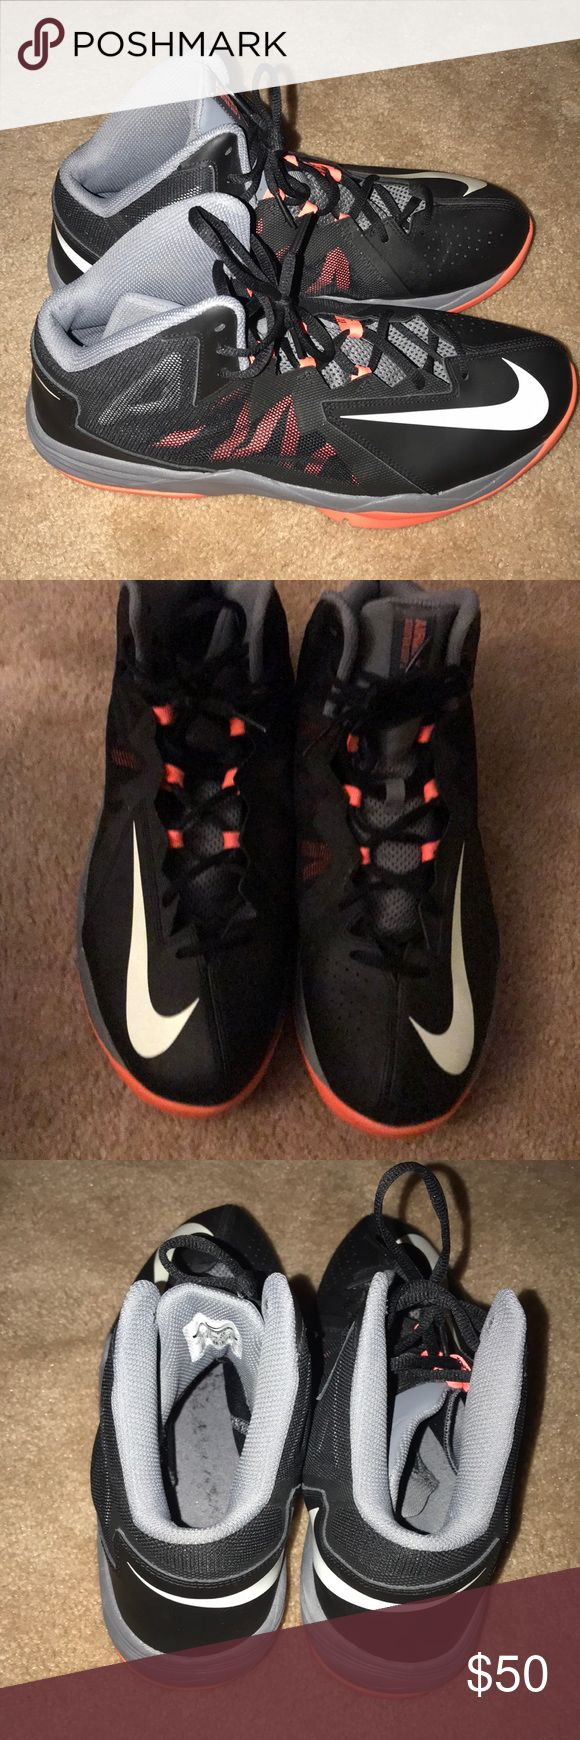 Nike Air Max Stutter Step 2 Size 12 Nike Air Max Stutter Step 2! Excellent condition, rarely worn. Nike Shoes Sneakers